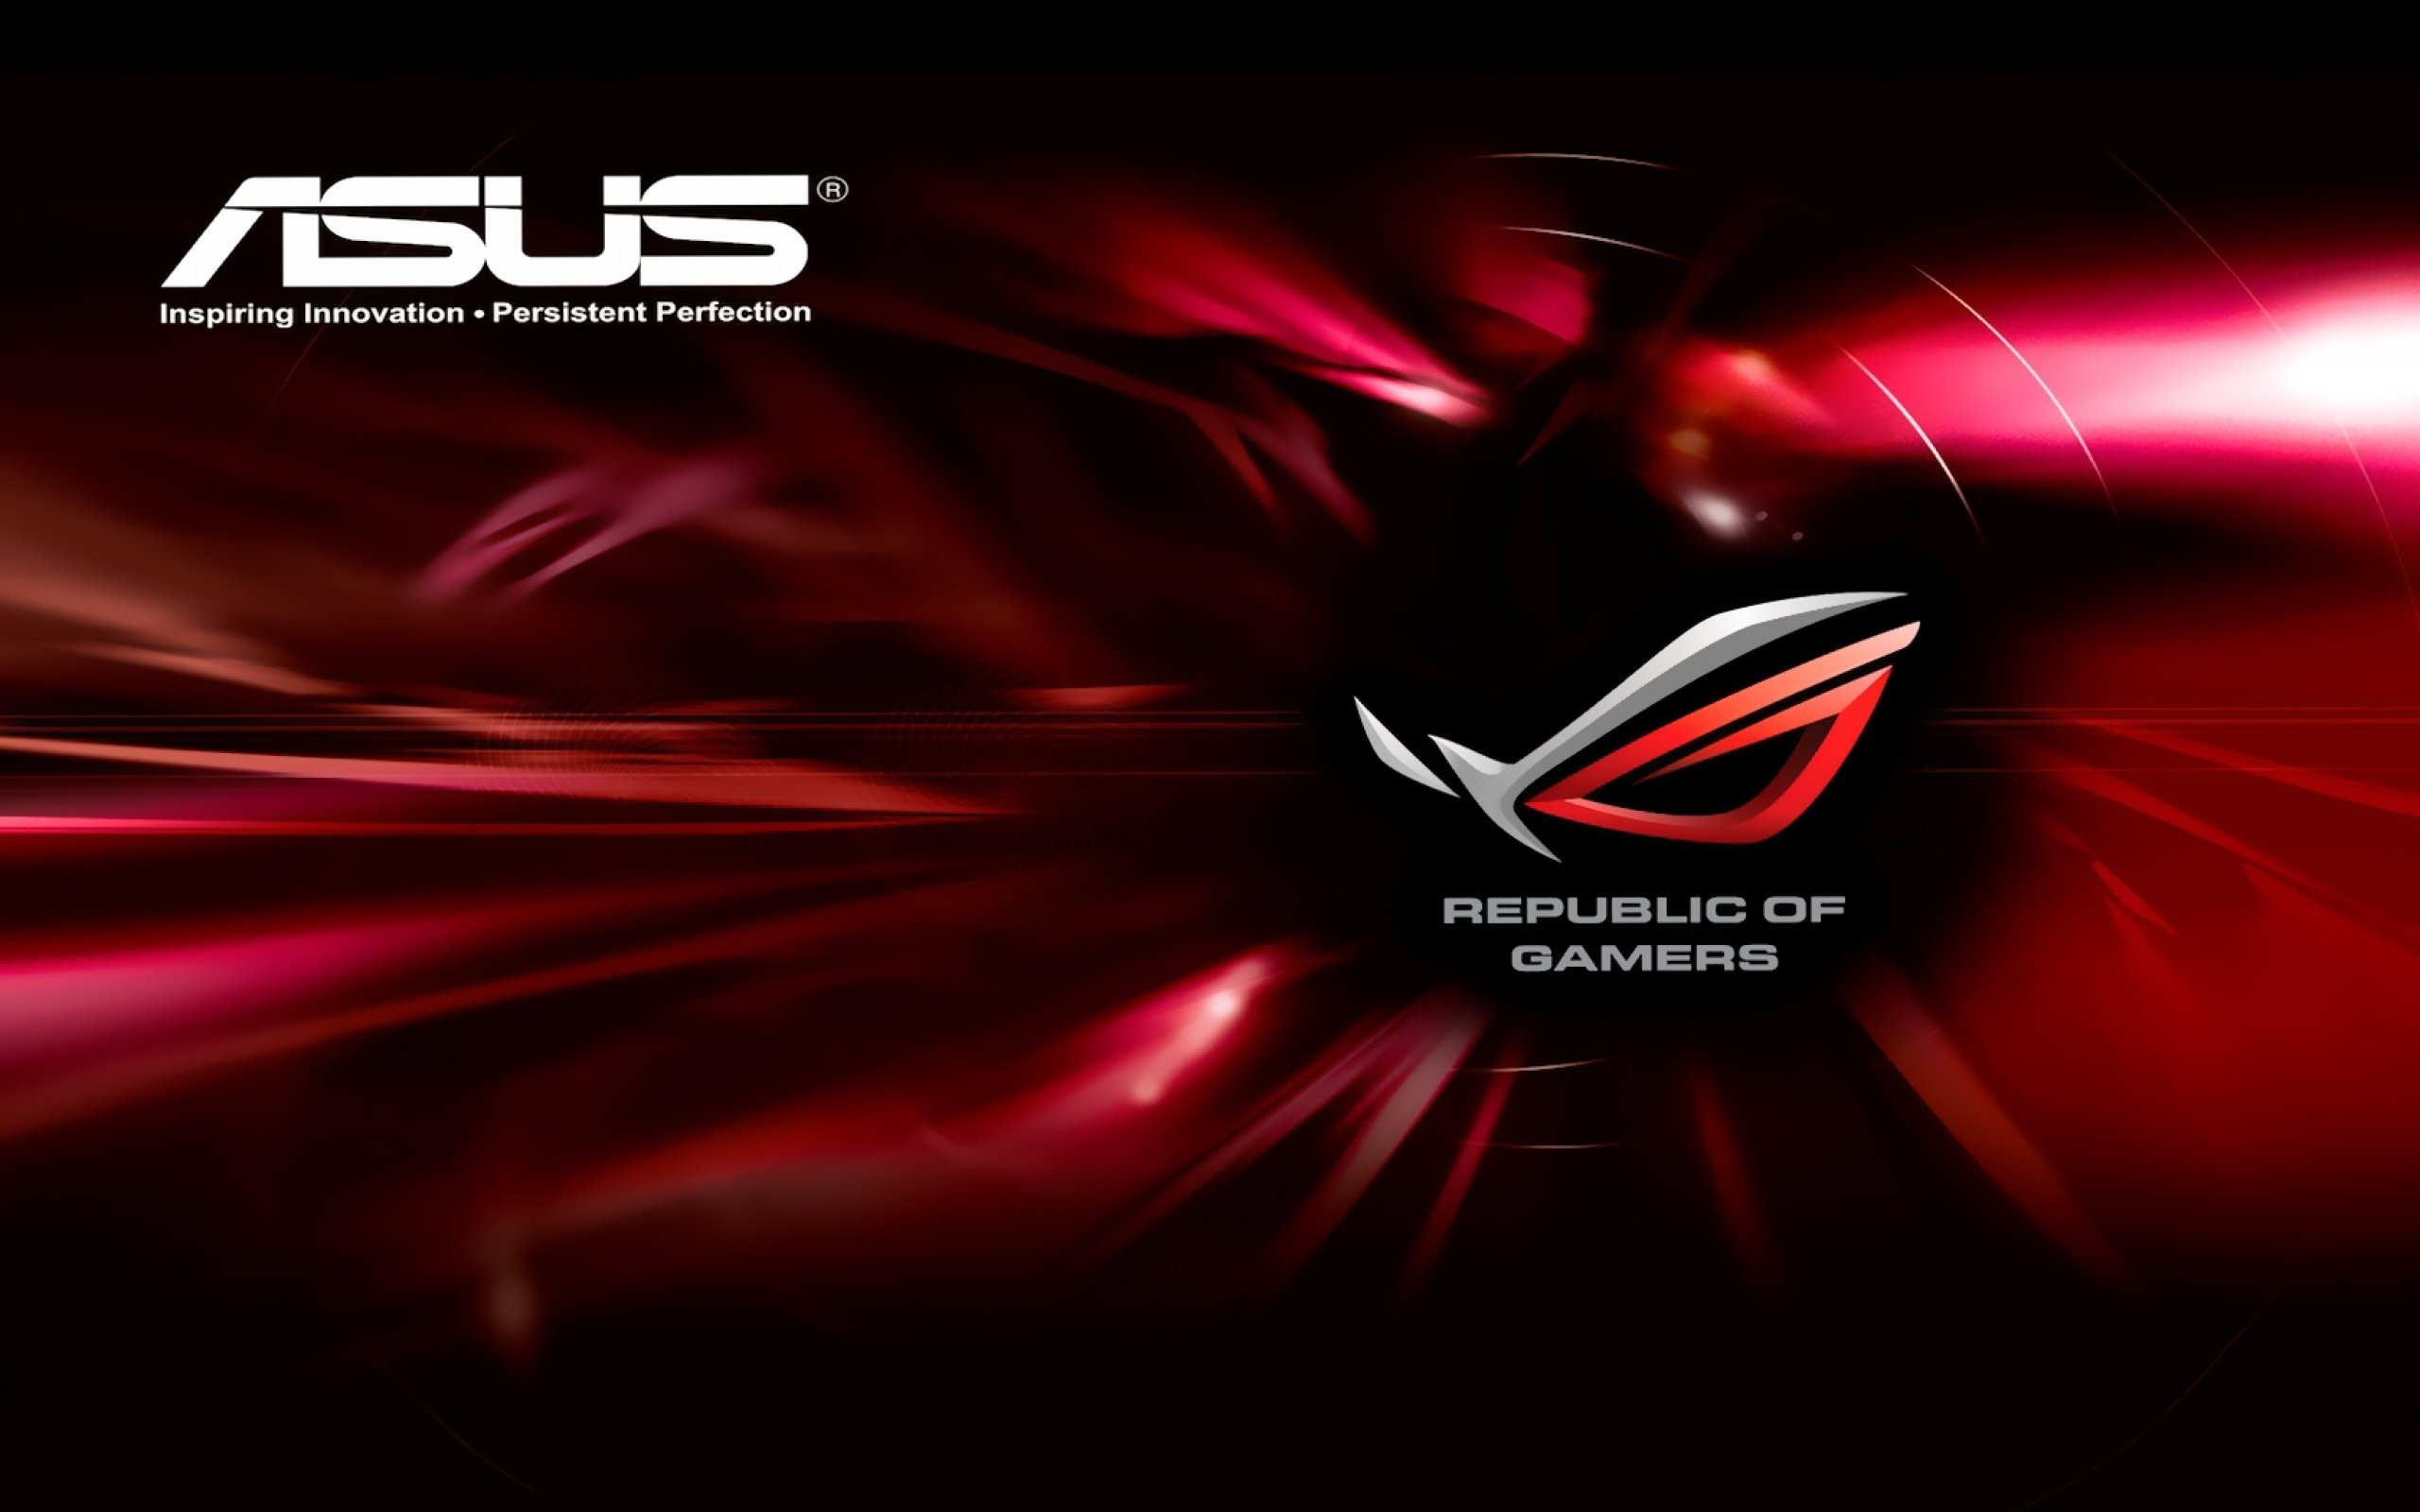 Asus Rog Wallpapers HD